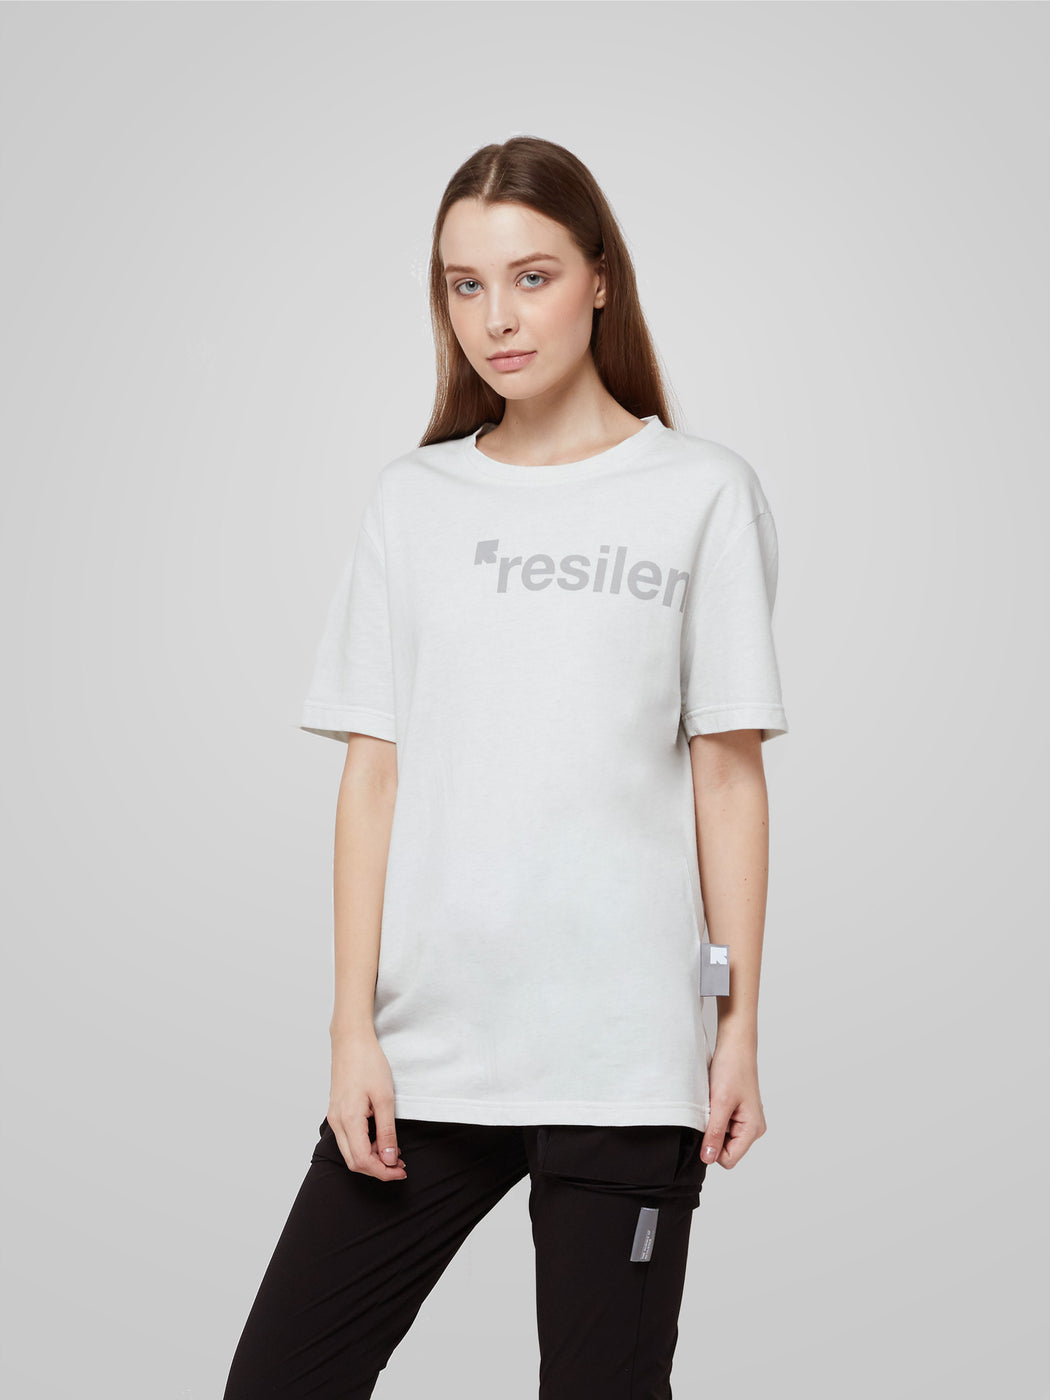 Unisex Science of Resilience White Female T-shirt